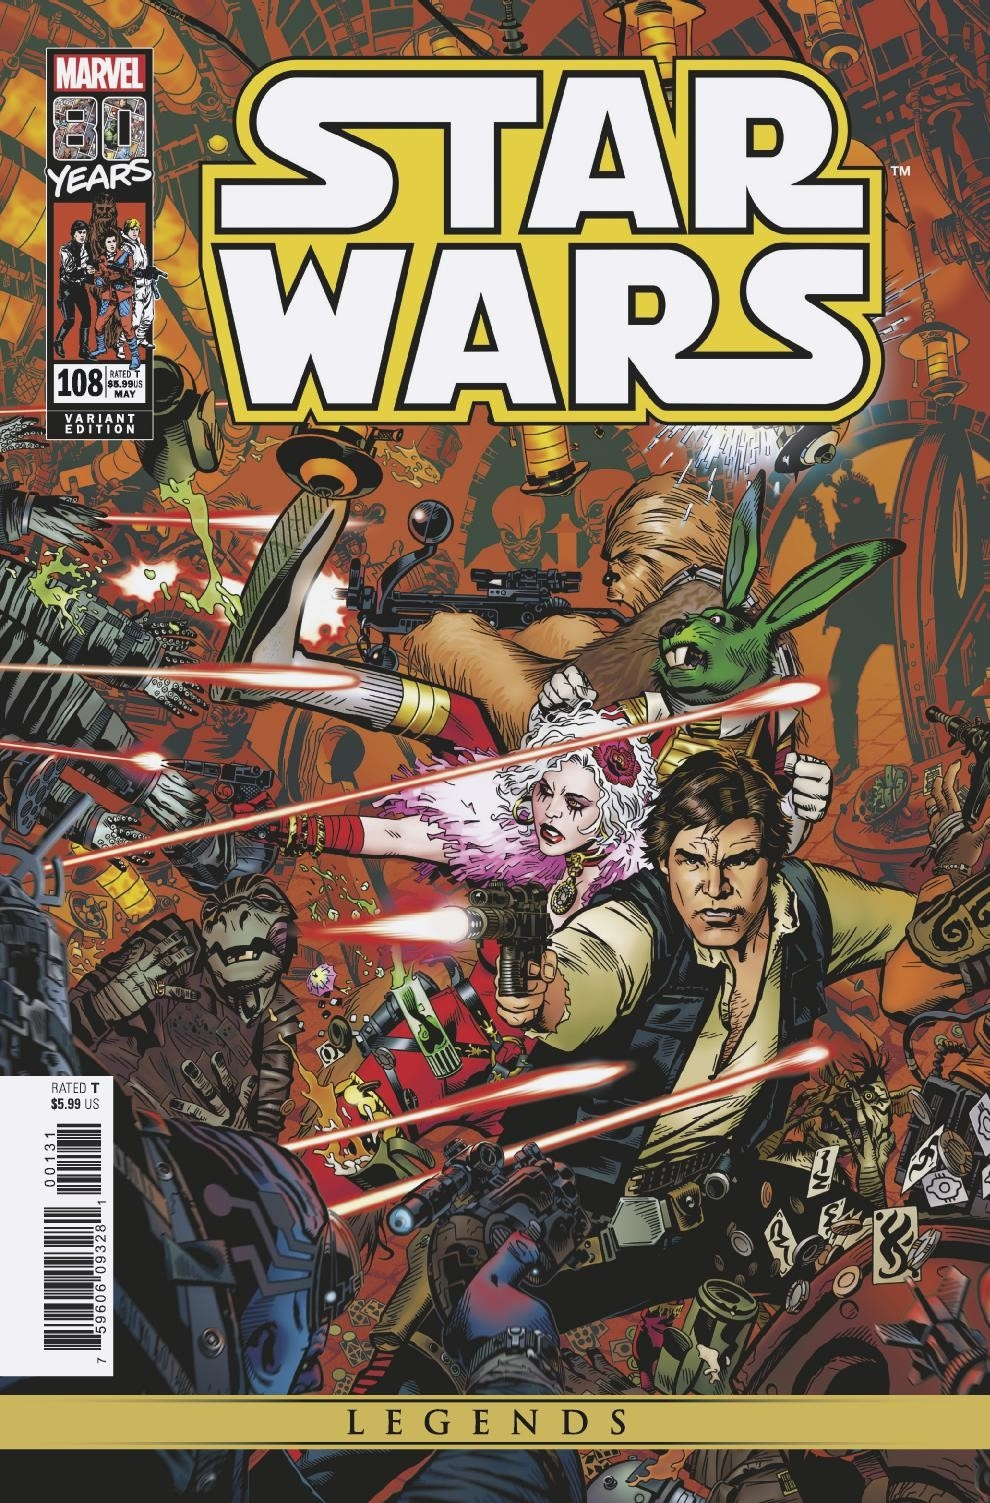 Star Wars #108 (Michael Golden Variant Cover) (29.05.2019)